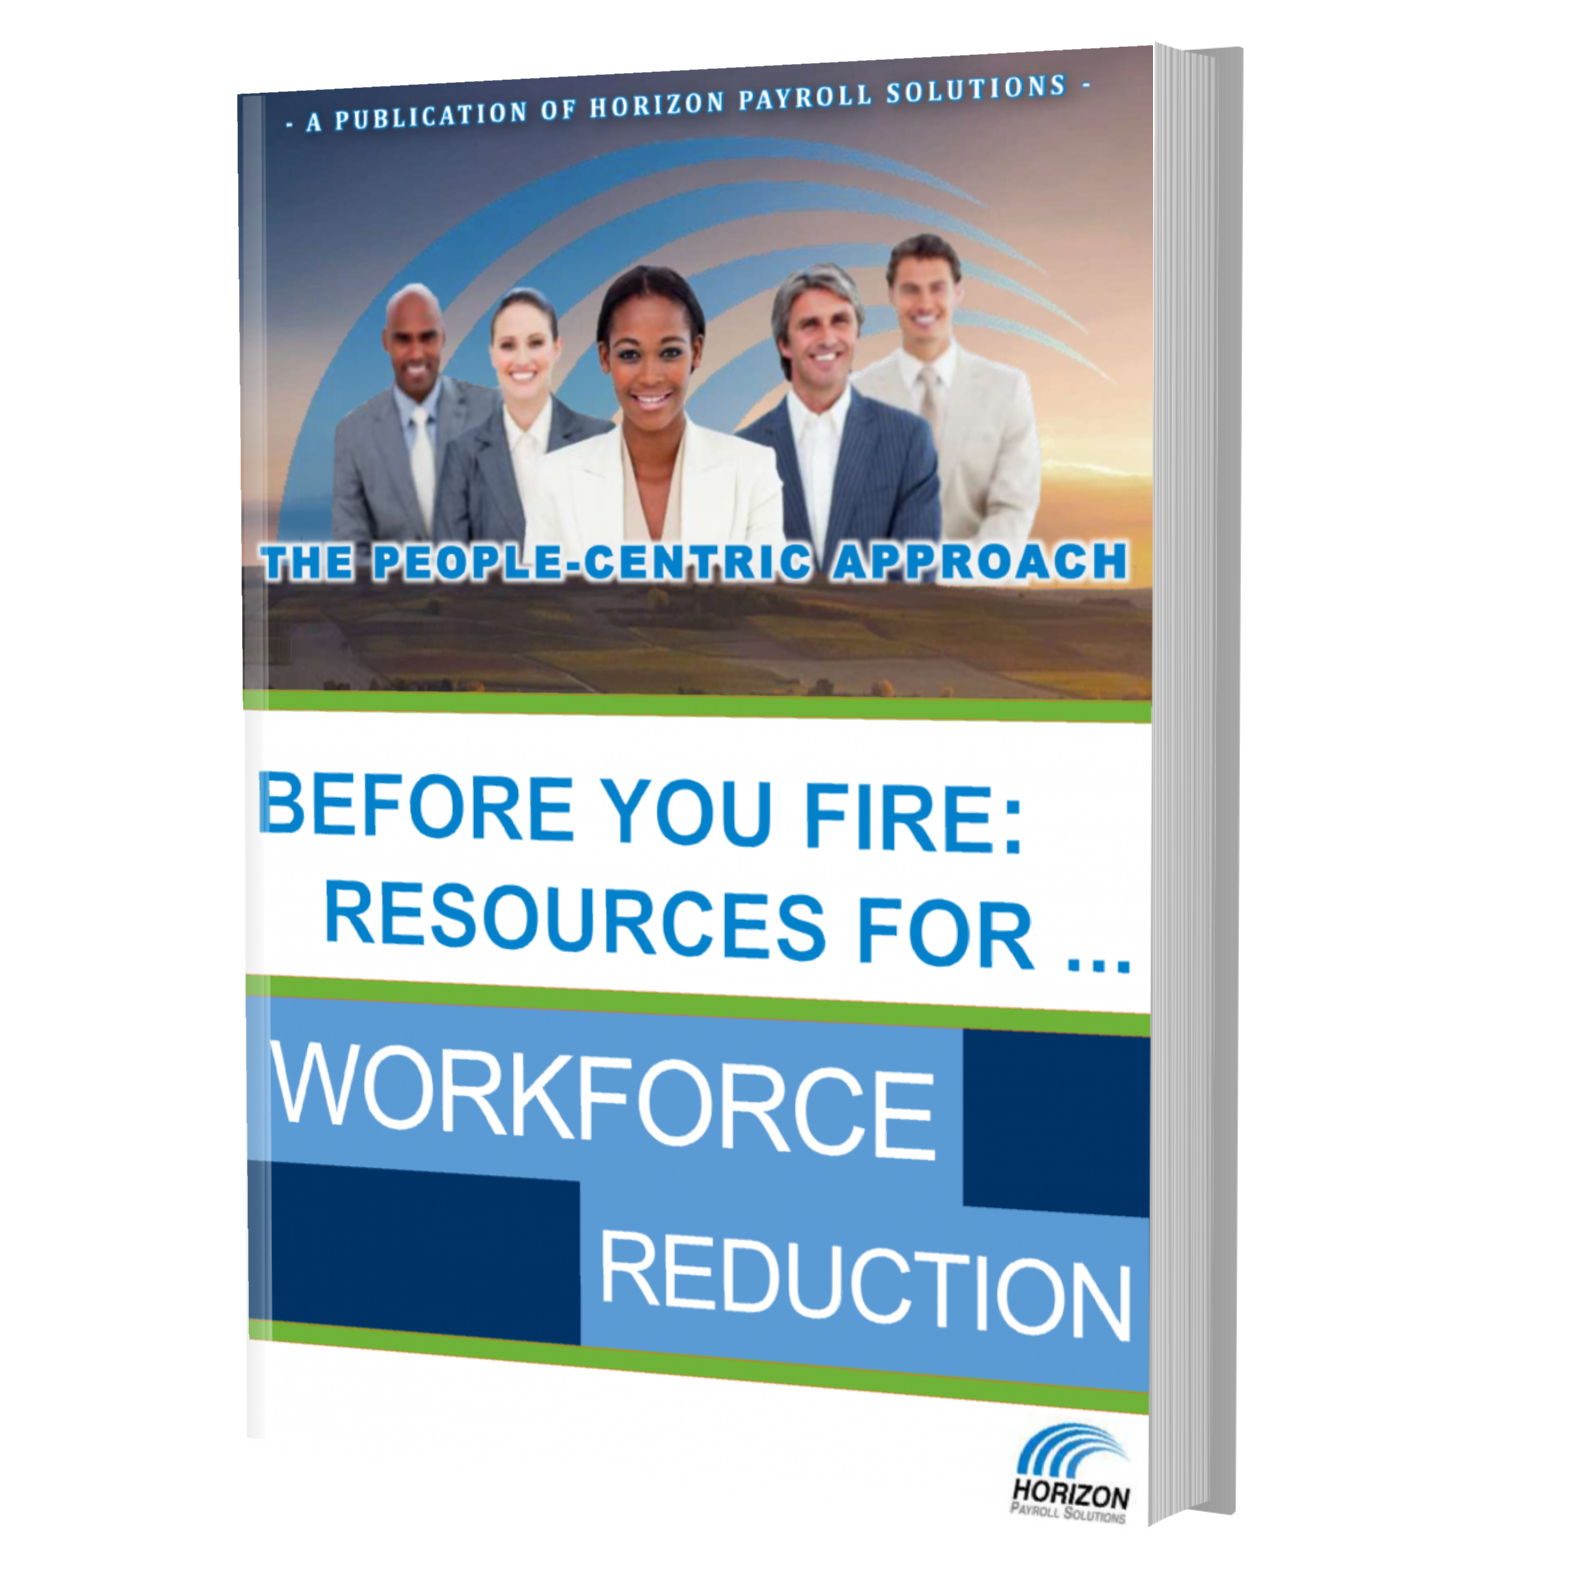 Workforce%20Reduction%20Ebook%203d%20Cover